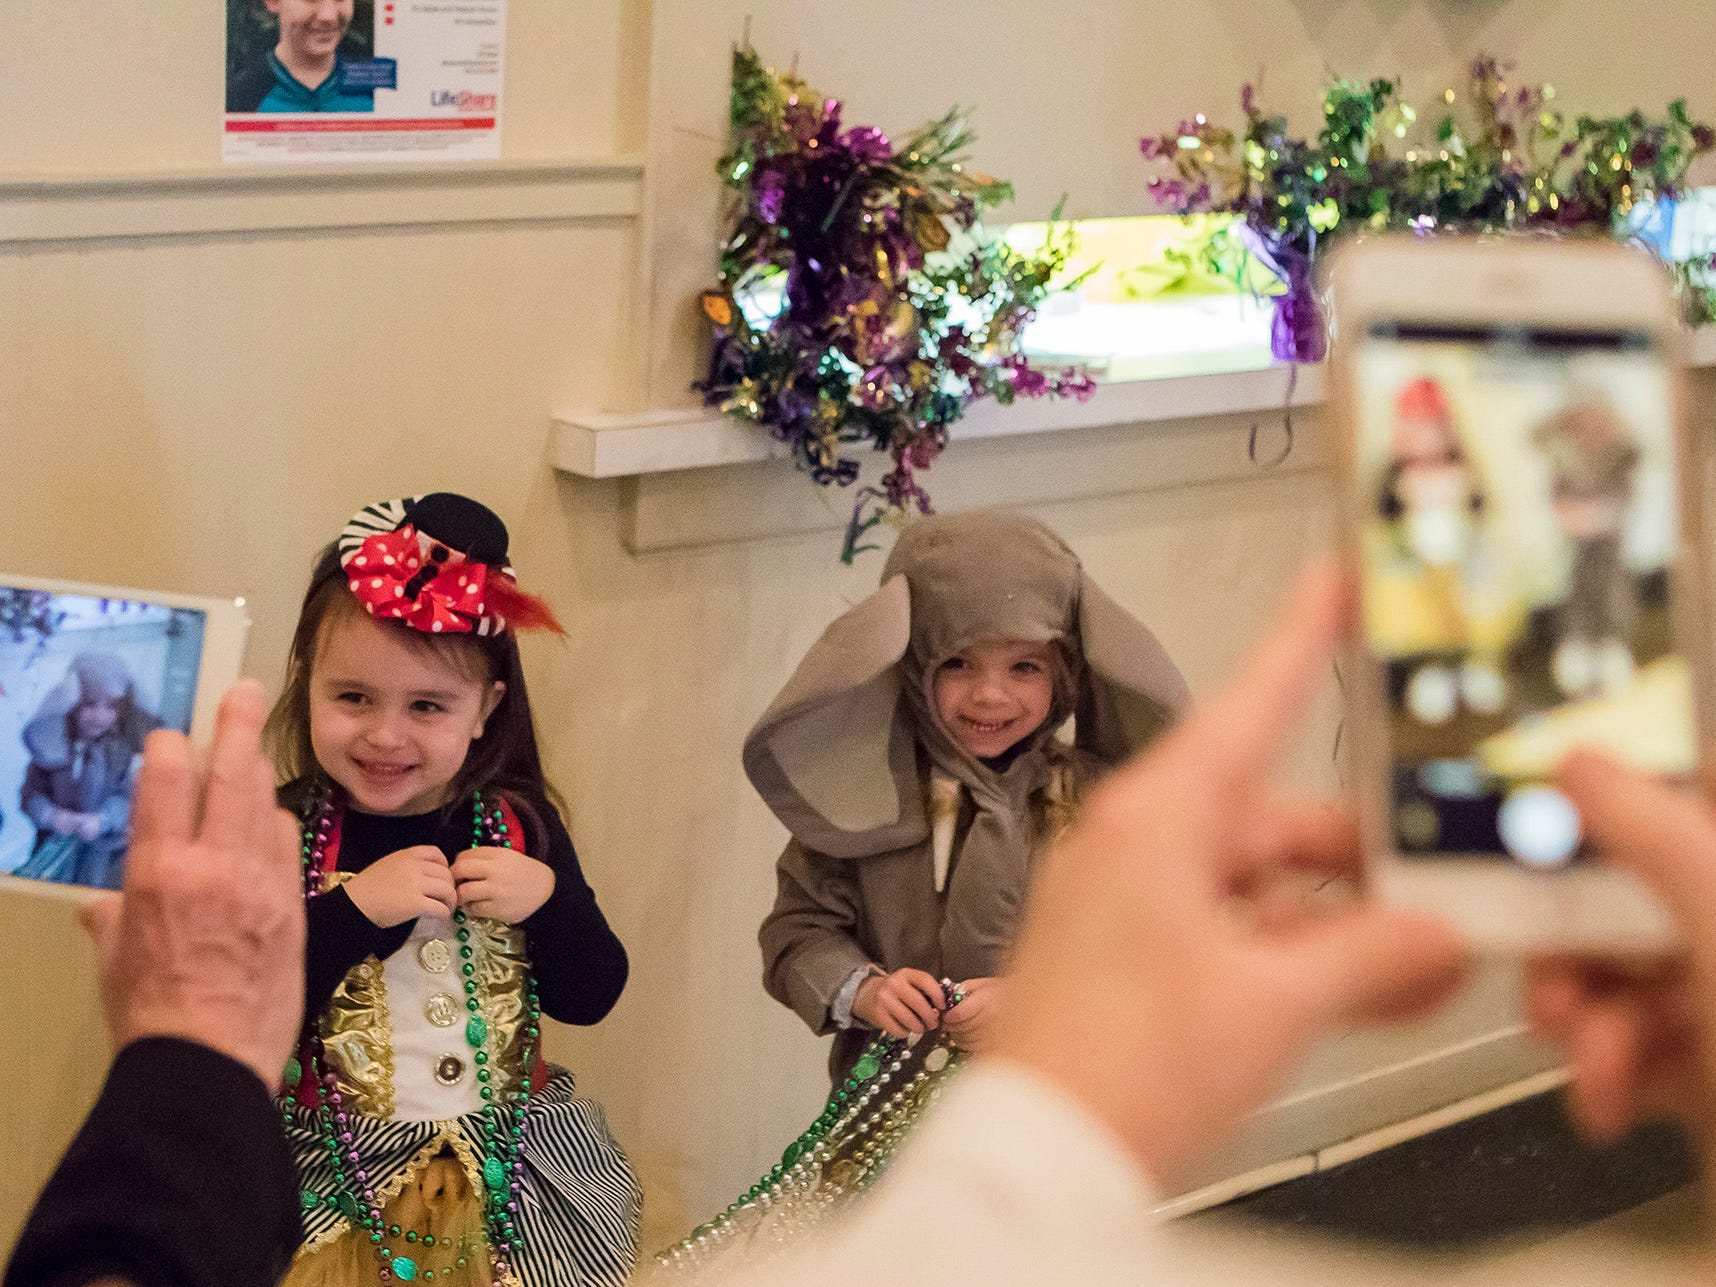 Parents snap pictures of their kids during St. Paul's Day School annual Krewe of Munchkins Parade in Monroe, La. on Feb. 11.